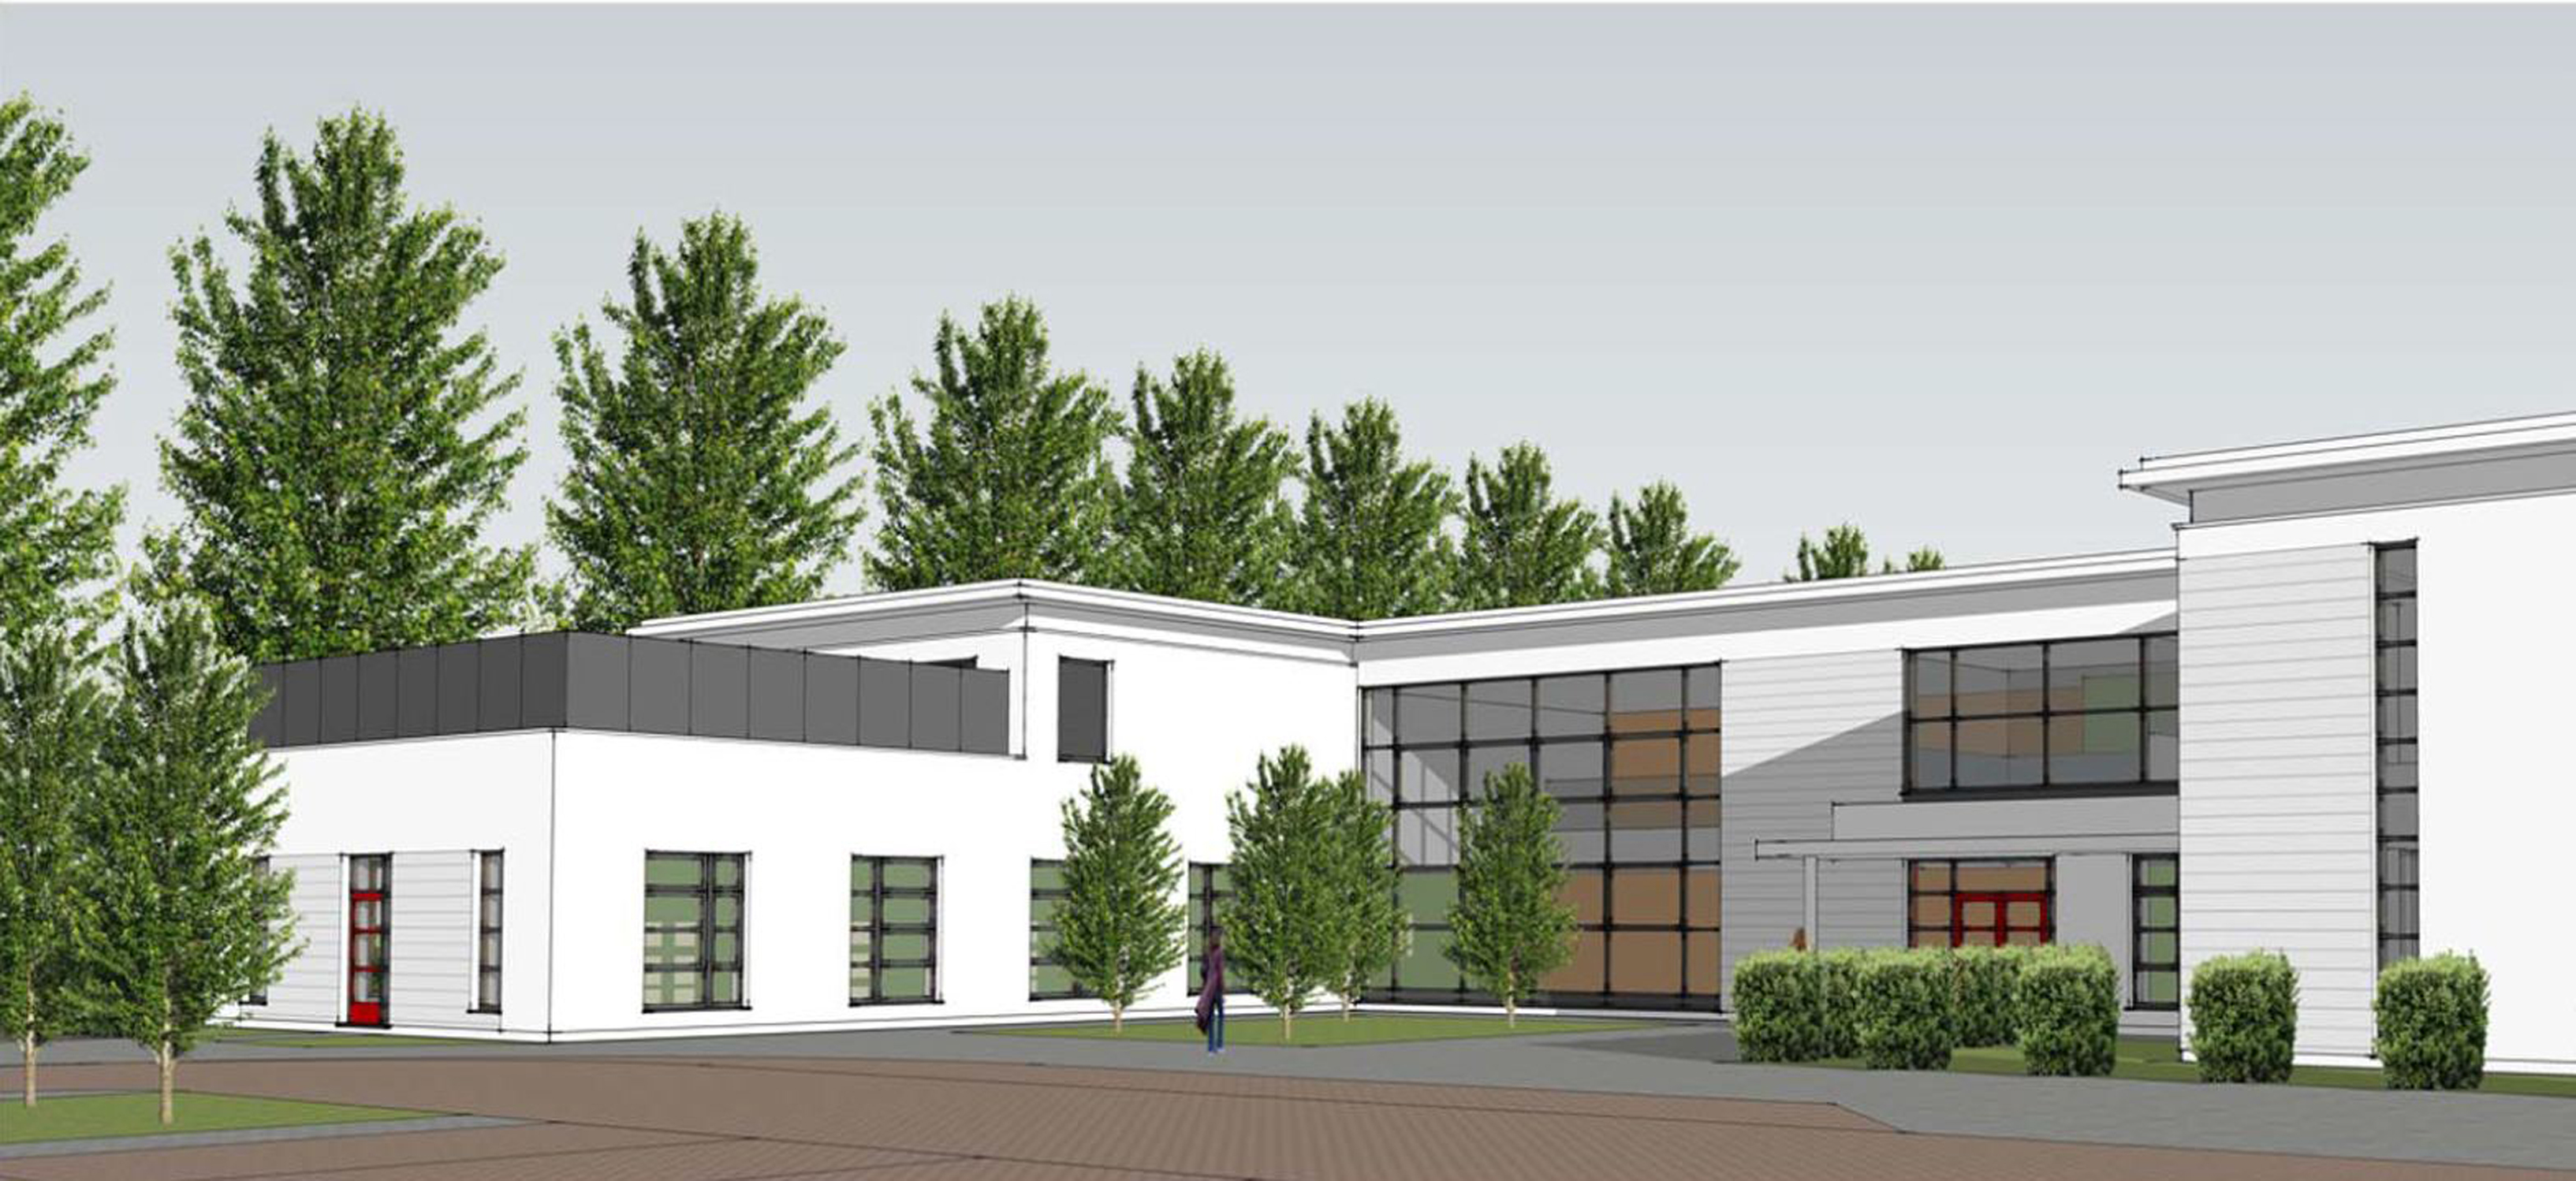 An artist's impression of the  new health centre in Inverurie.